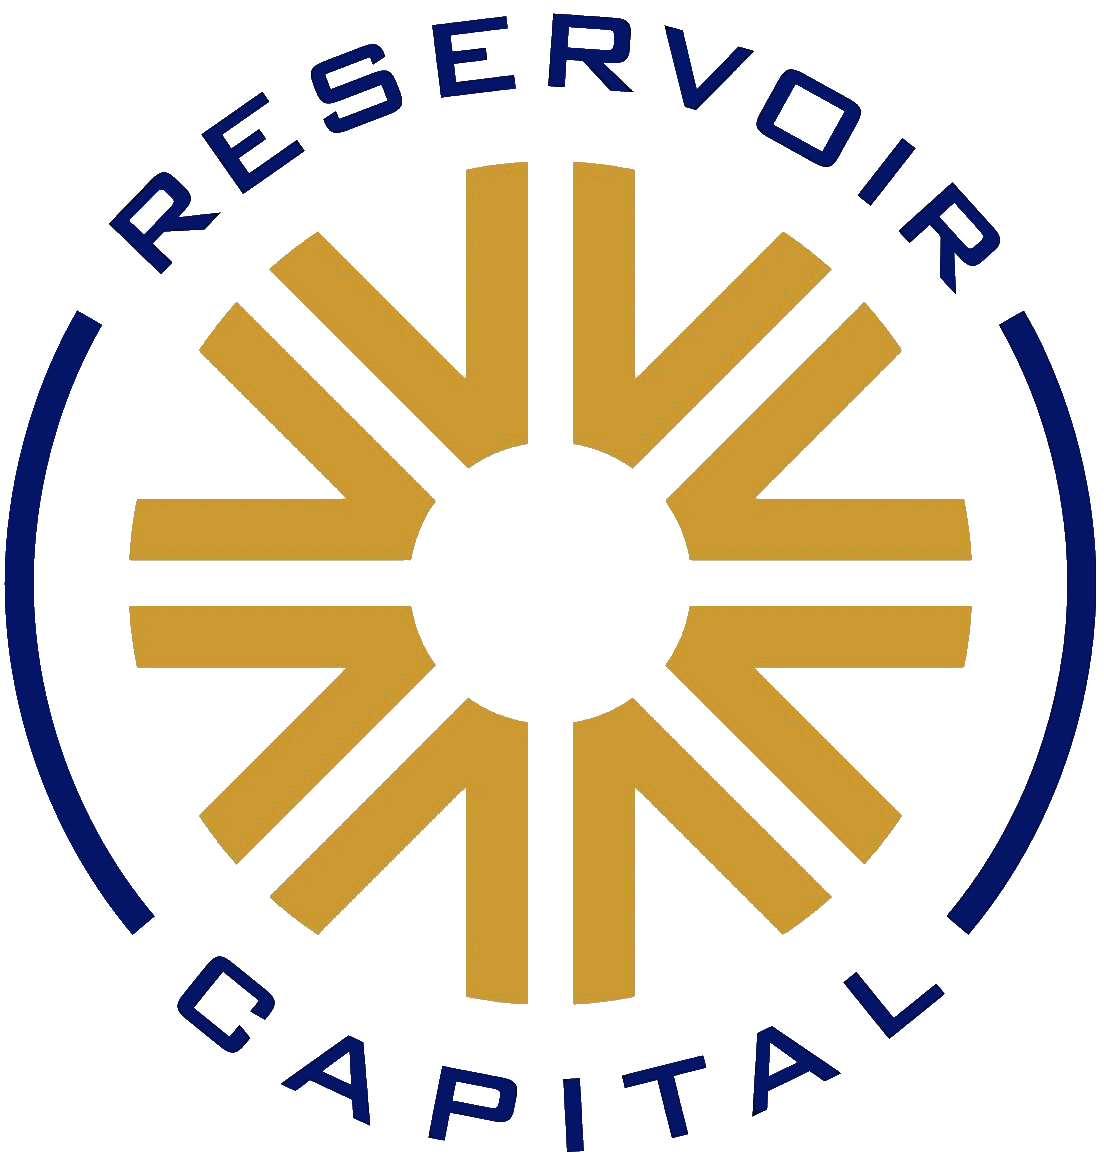 Reservoir Capital Corp. Enters into Agreement to Invest indirectly in Shiroro & Gurara Hydropower plants and add 5.5MW net operating capacity to reach 42